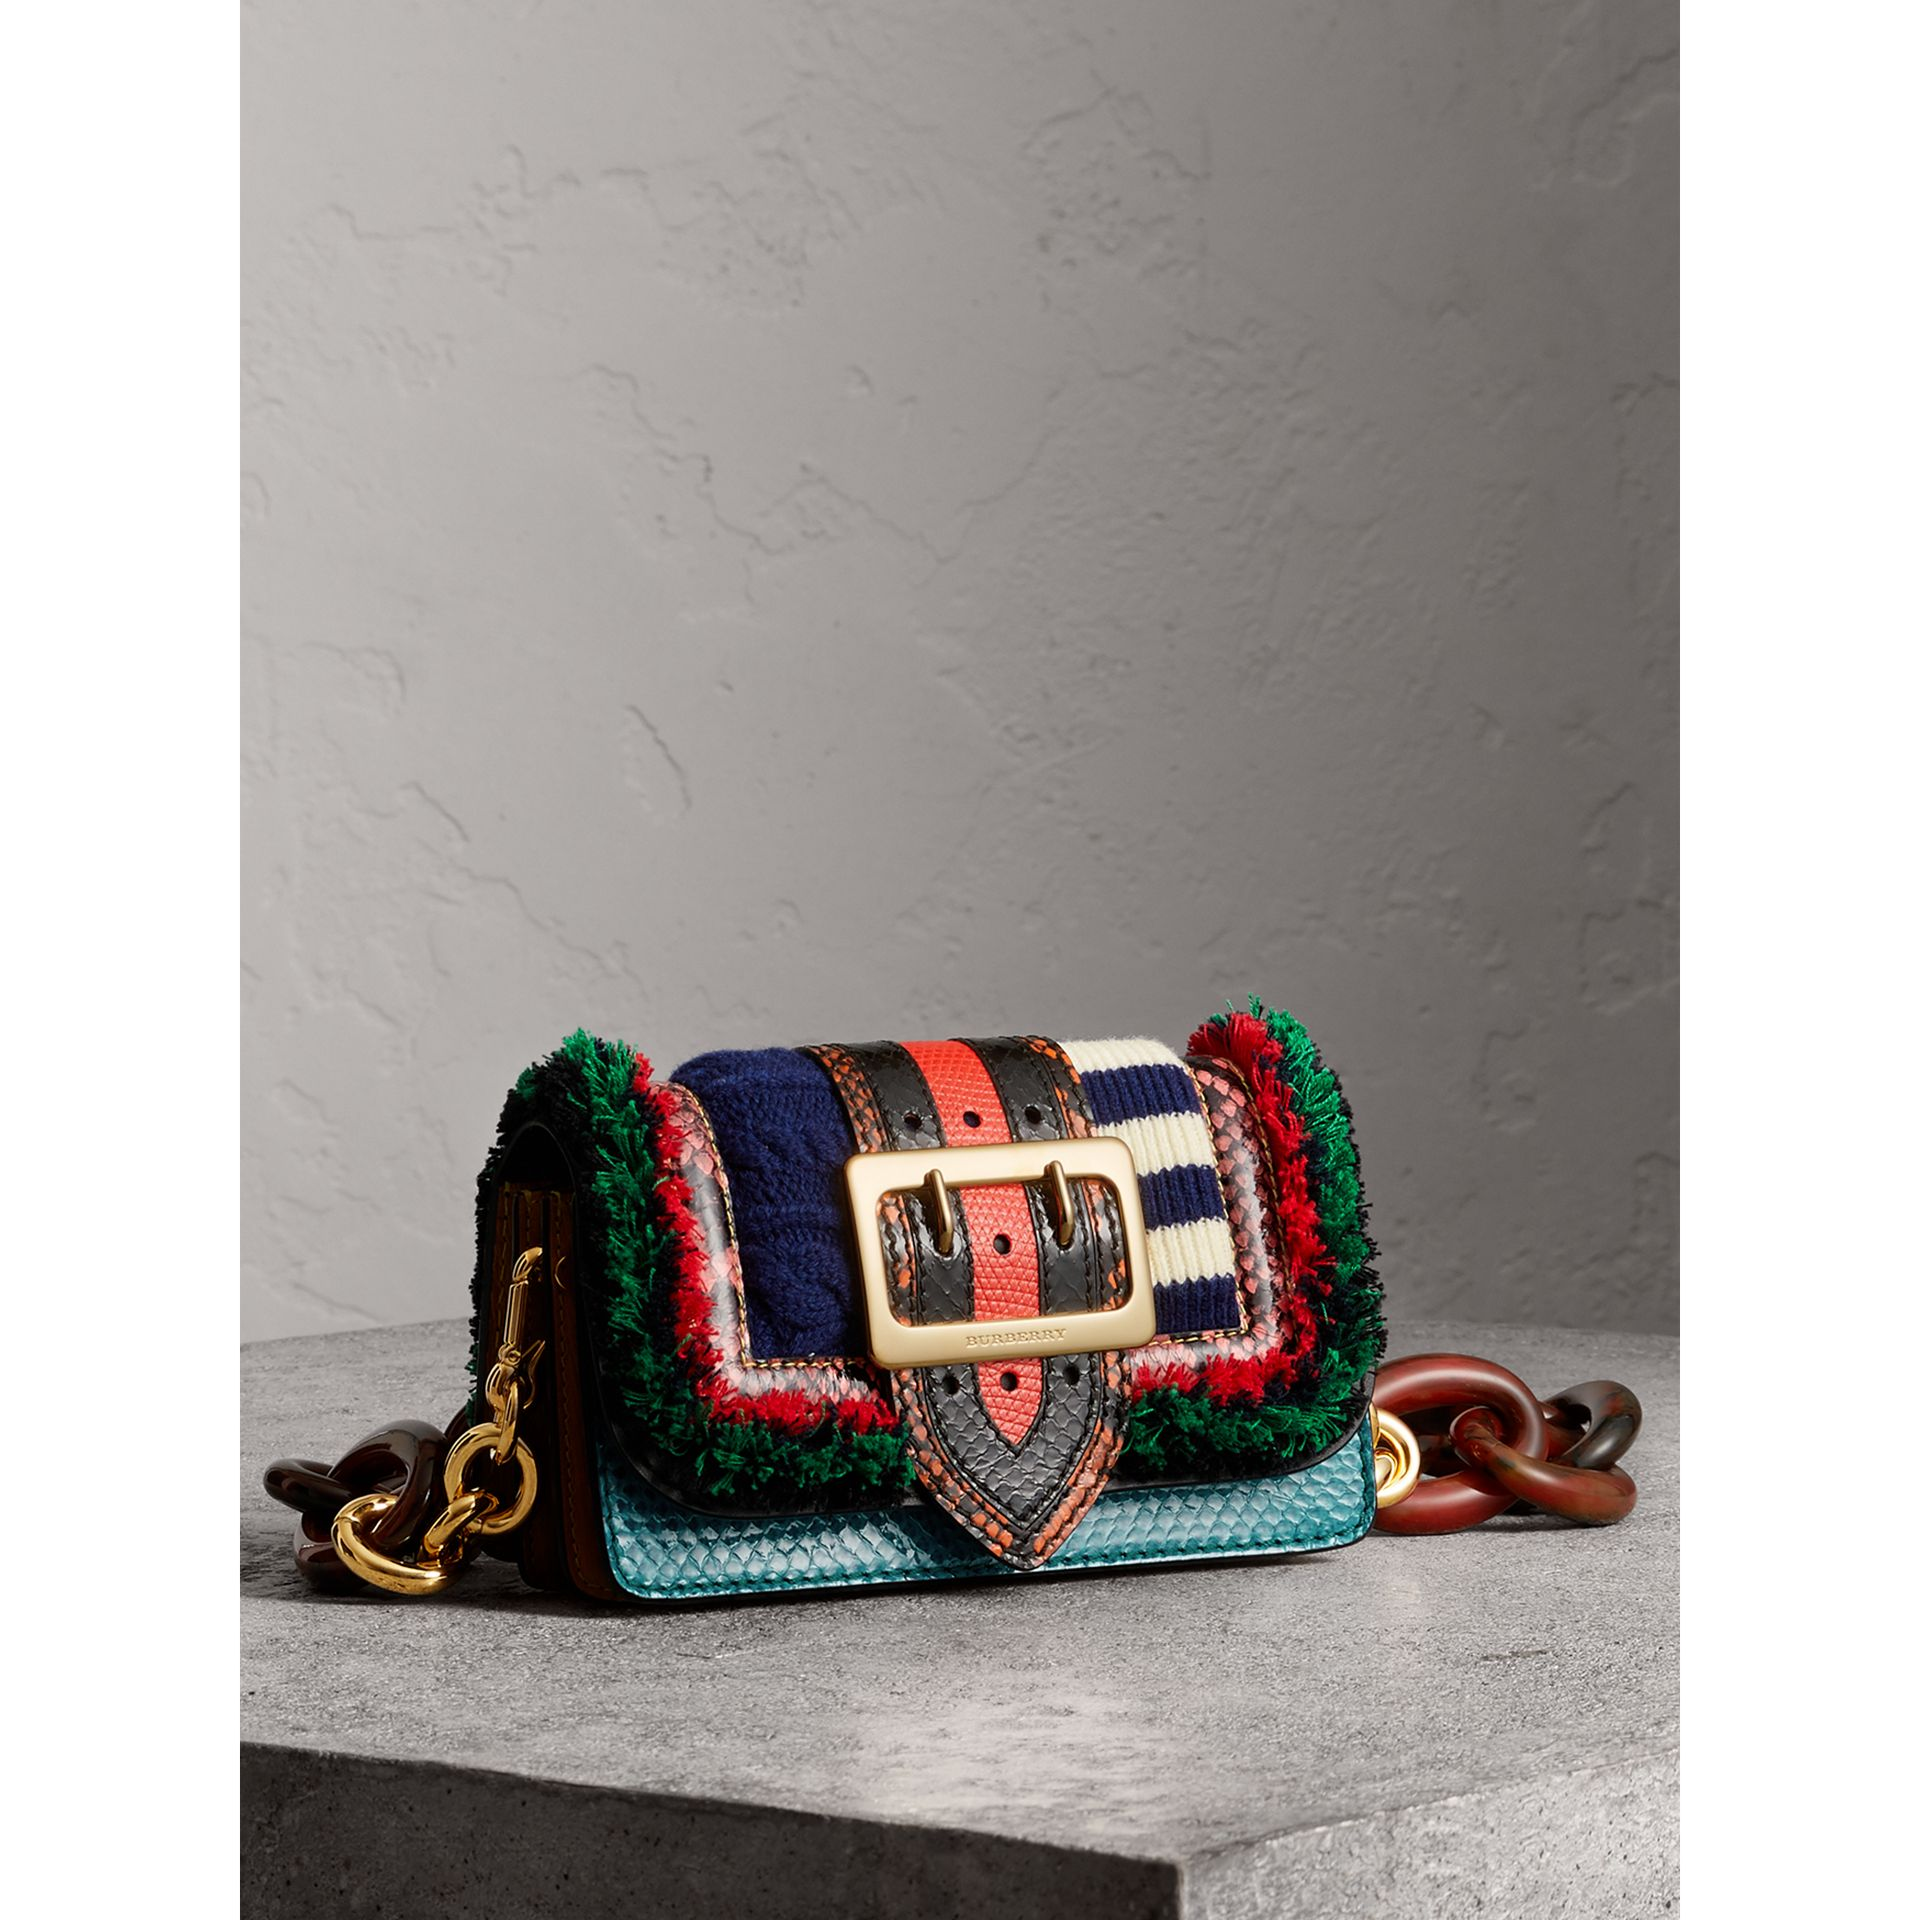 Sac The Patchwork en cuir exotique et maille de laine (Multicolore) - Femme | Burberry - photo de la galerie 7